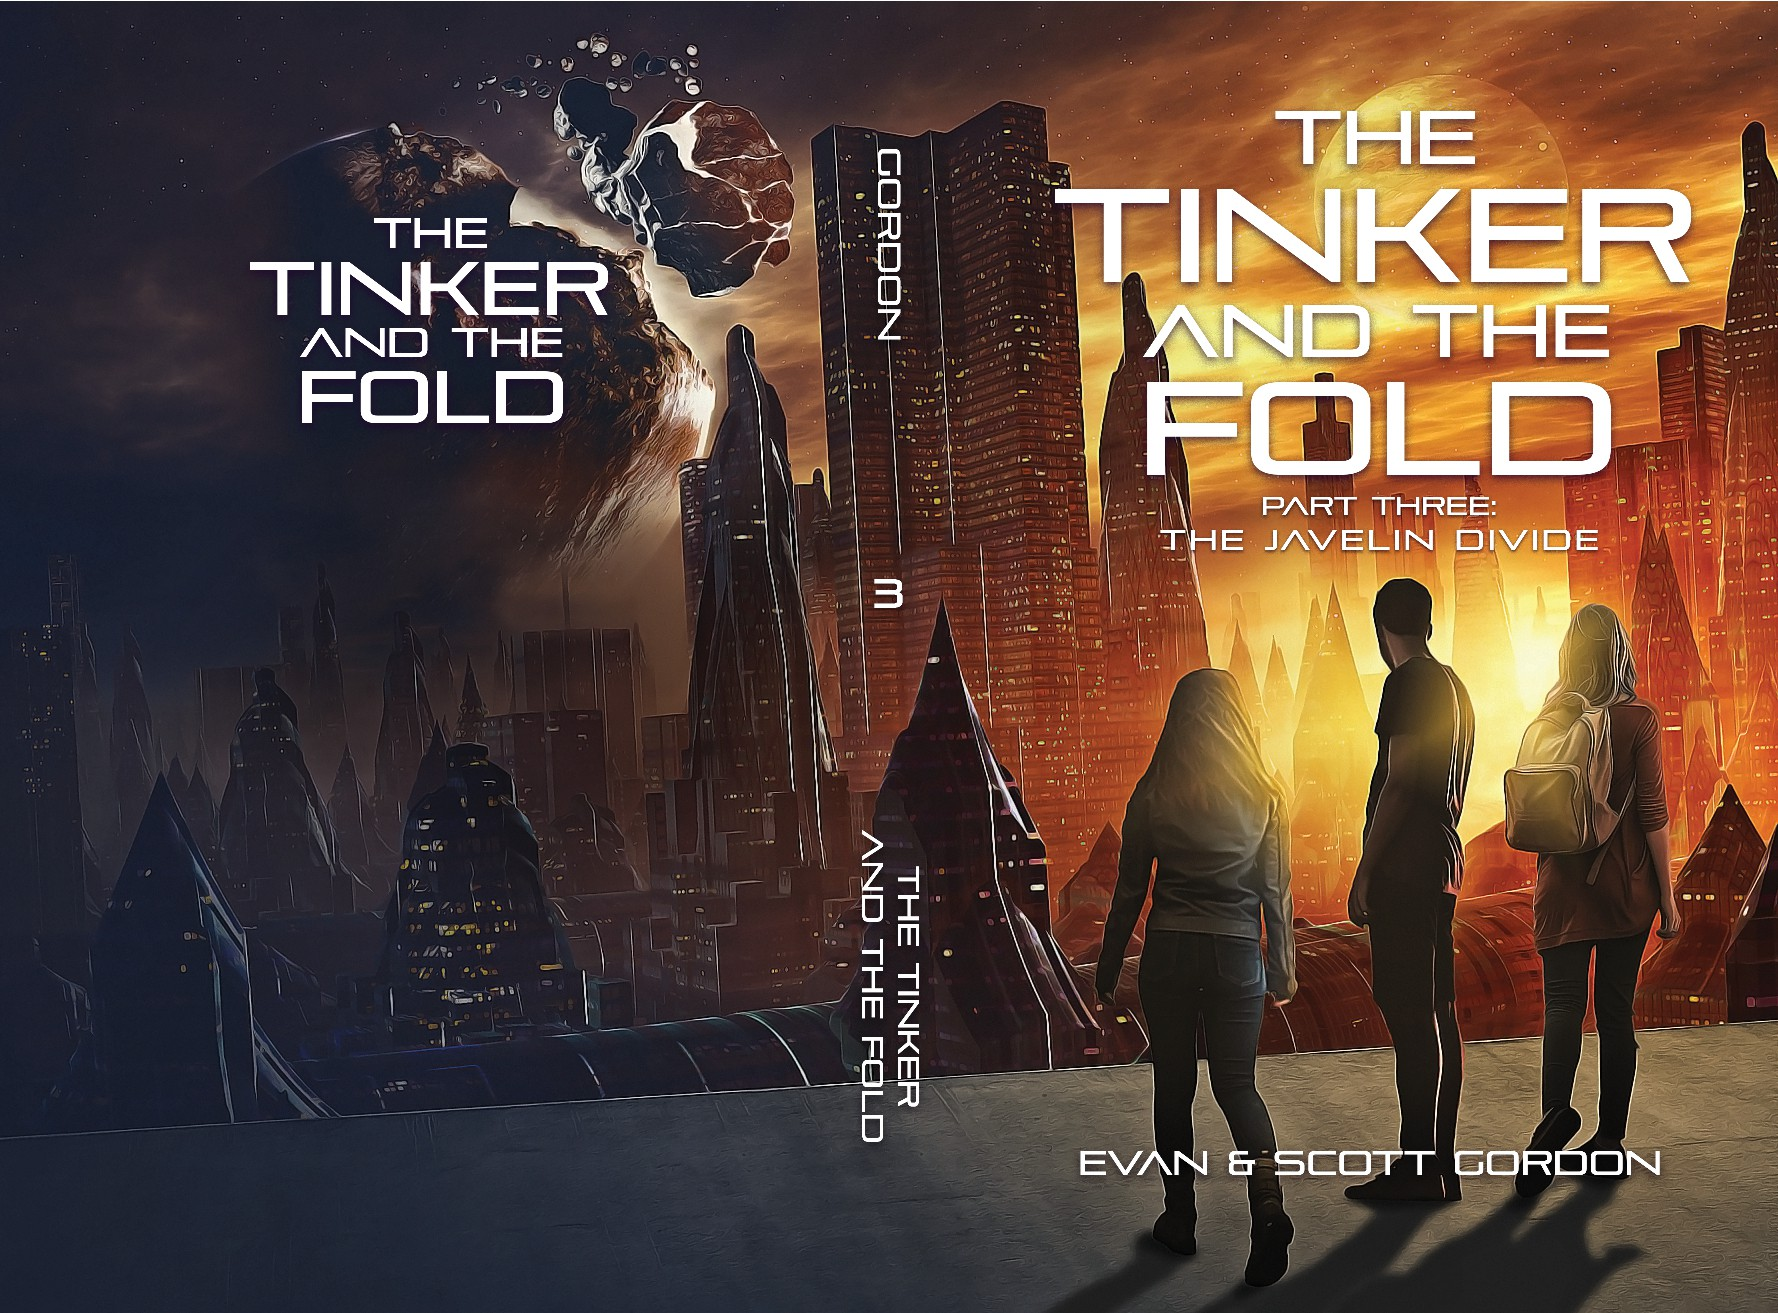 Father/Son Sci-fi writing team seeks cover for 3rd book